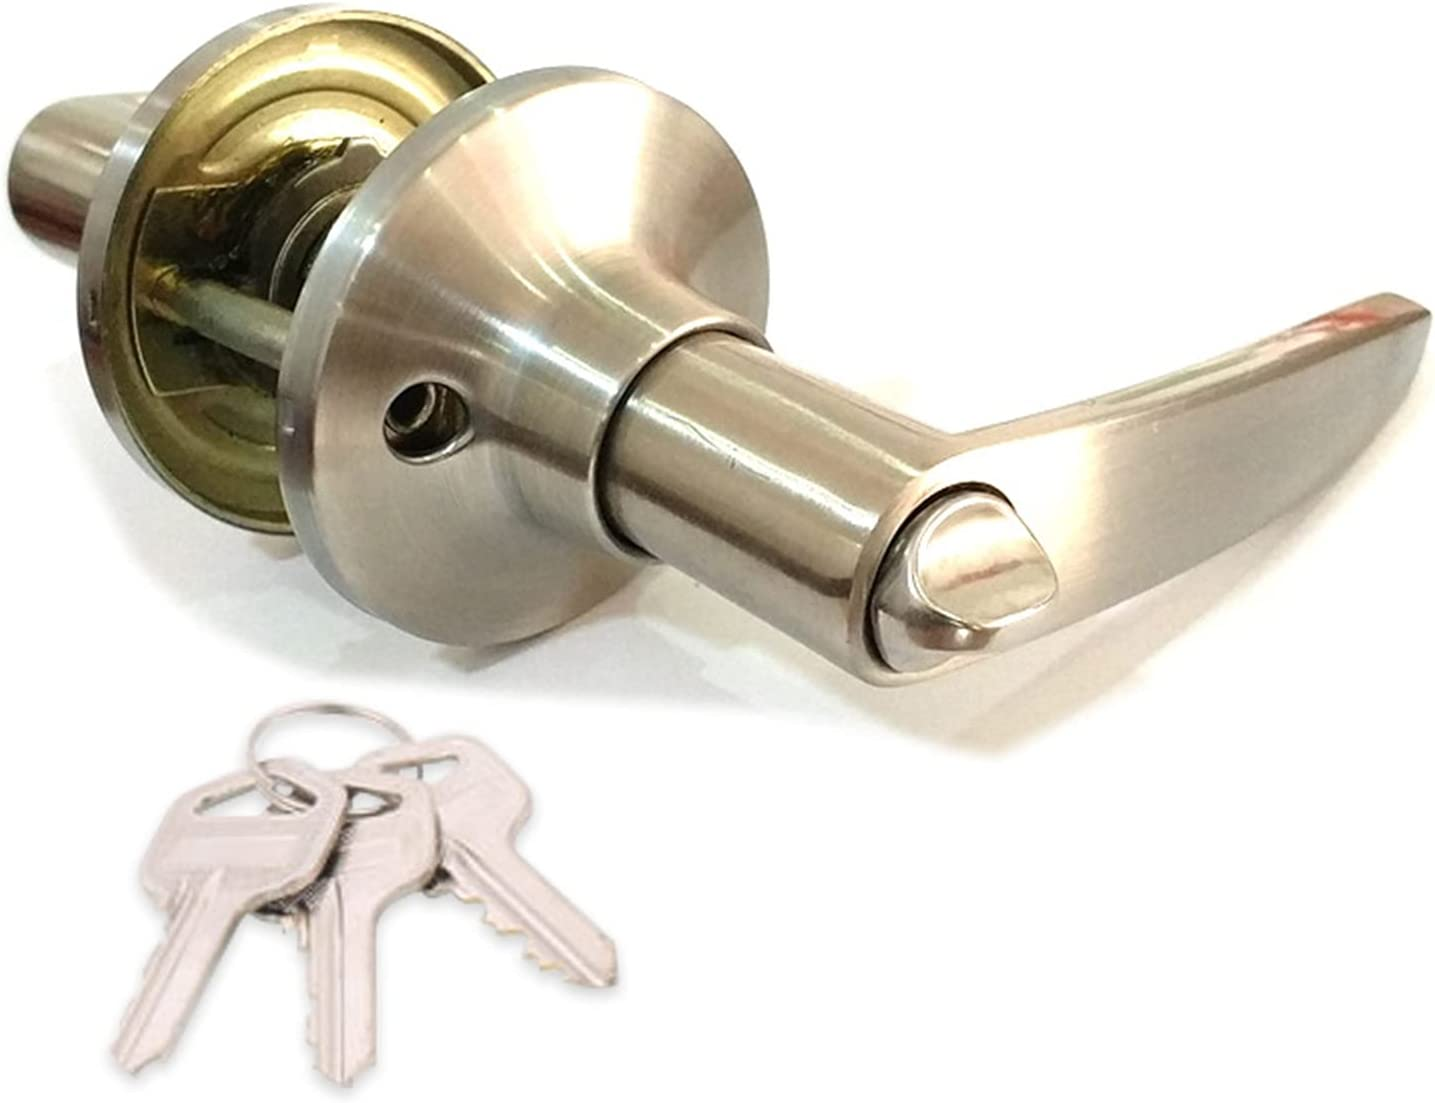 CHENGSYSTE Push 25% OFF Pull Handles Door Lockset Handle Privac Entrance Credence